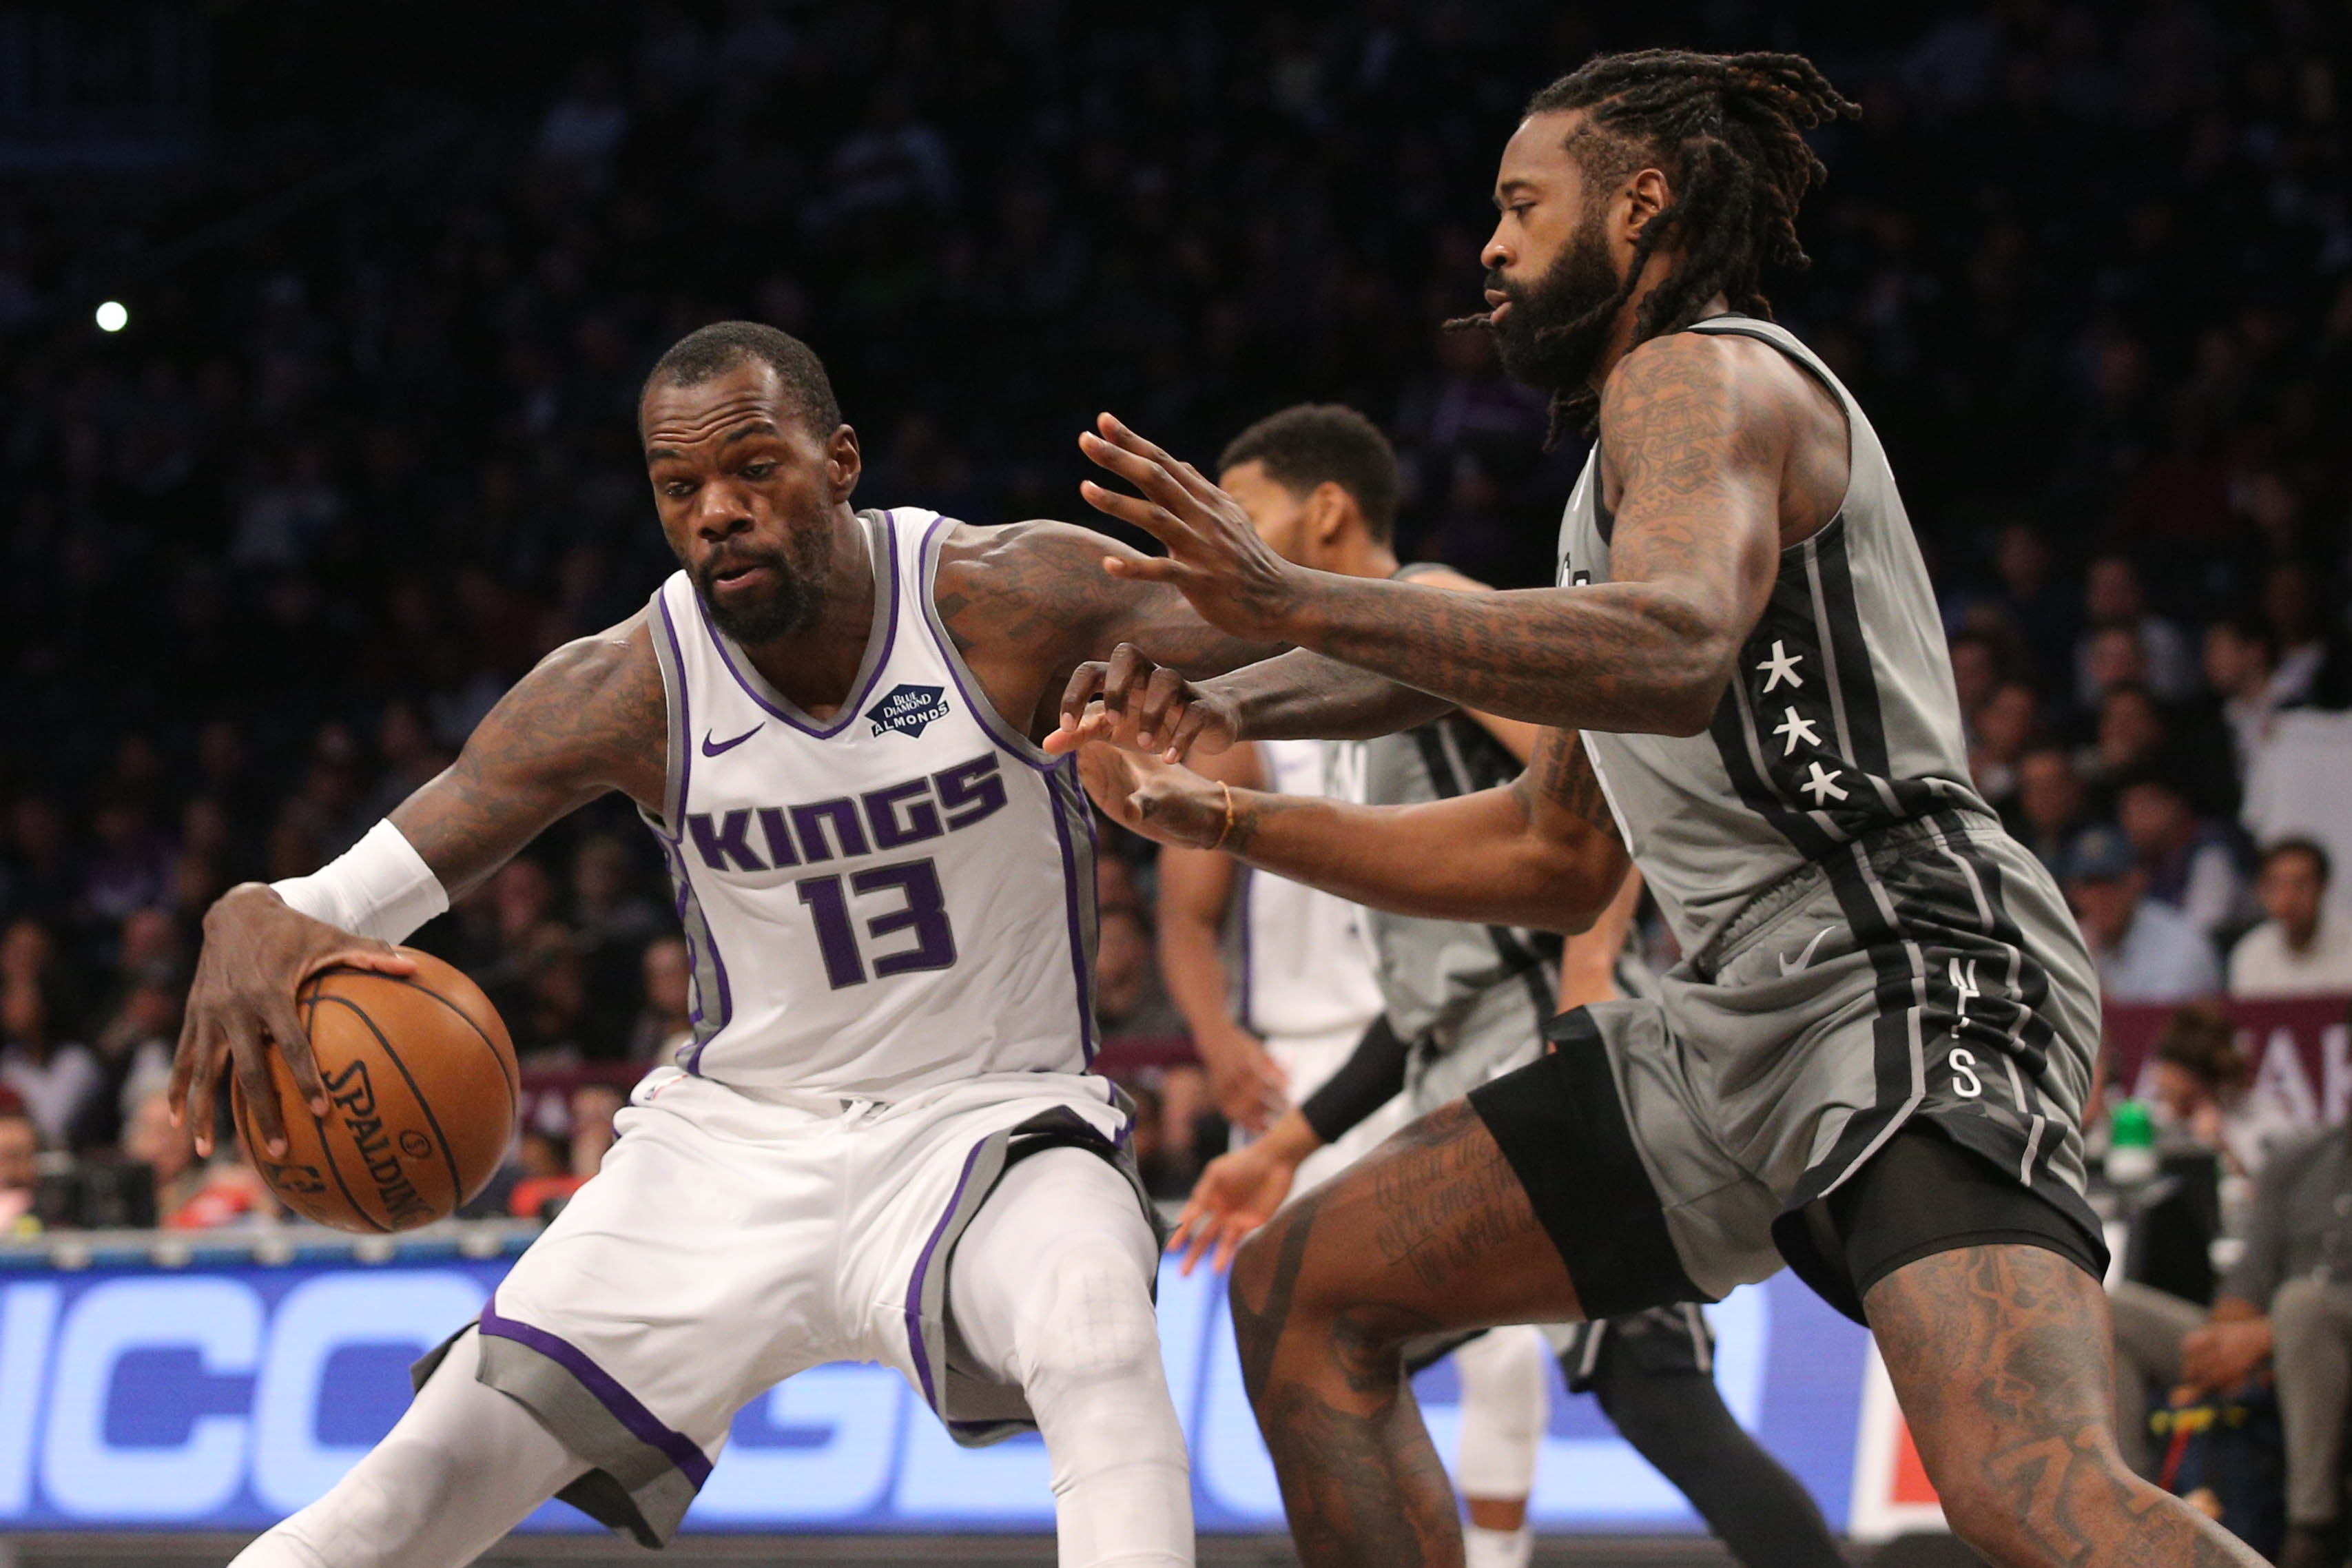 Nov 22, 2019; Brooklyn, NY, USA; Sacramento Kings center Dewayne Dedmon (13) controls the ball against Brooklyn Nets center DeAndre Jordan (6) during the first quarter at Barclays Center.